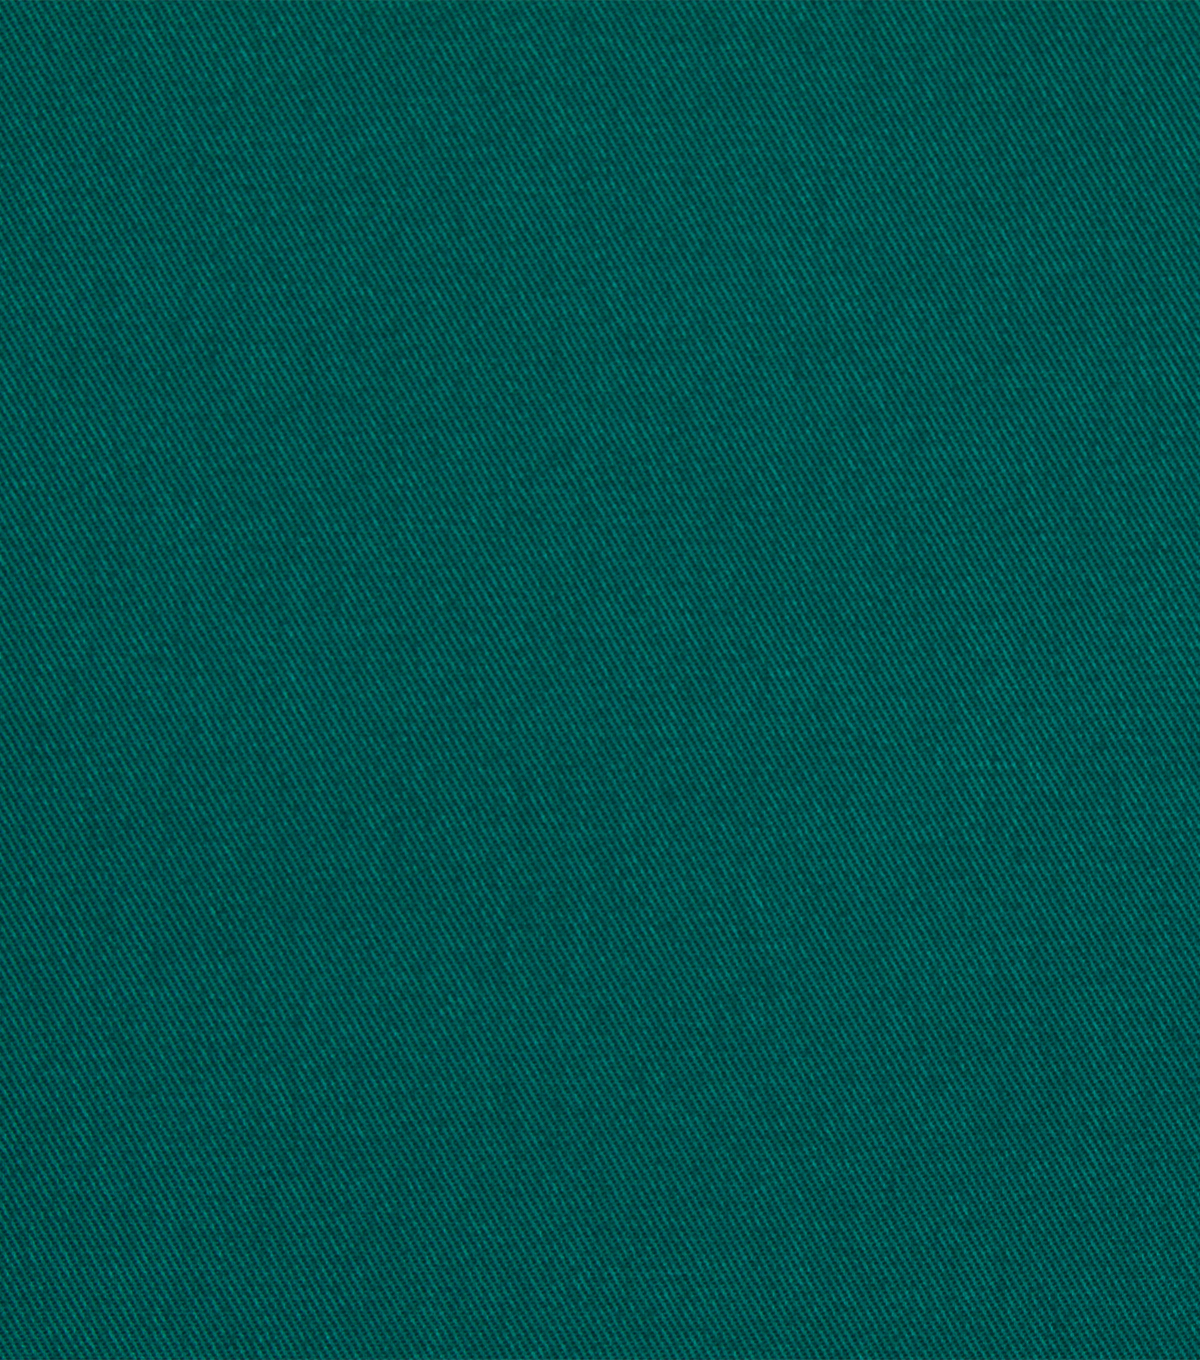 Home Decor 8\u0022x8\u0022 Fabric Swatch-Robert Allen Success Teal